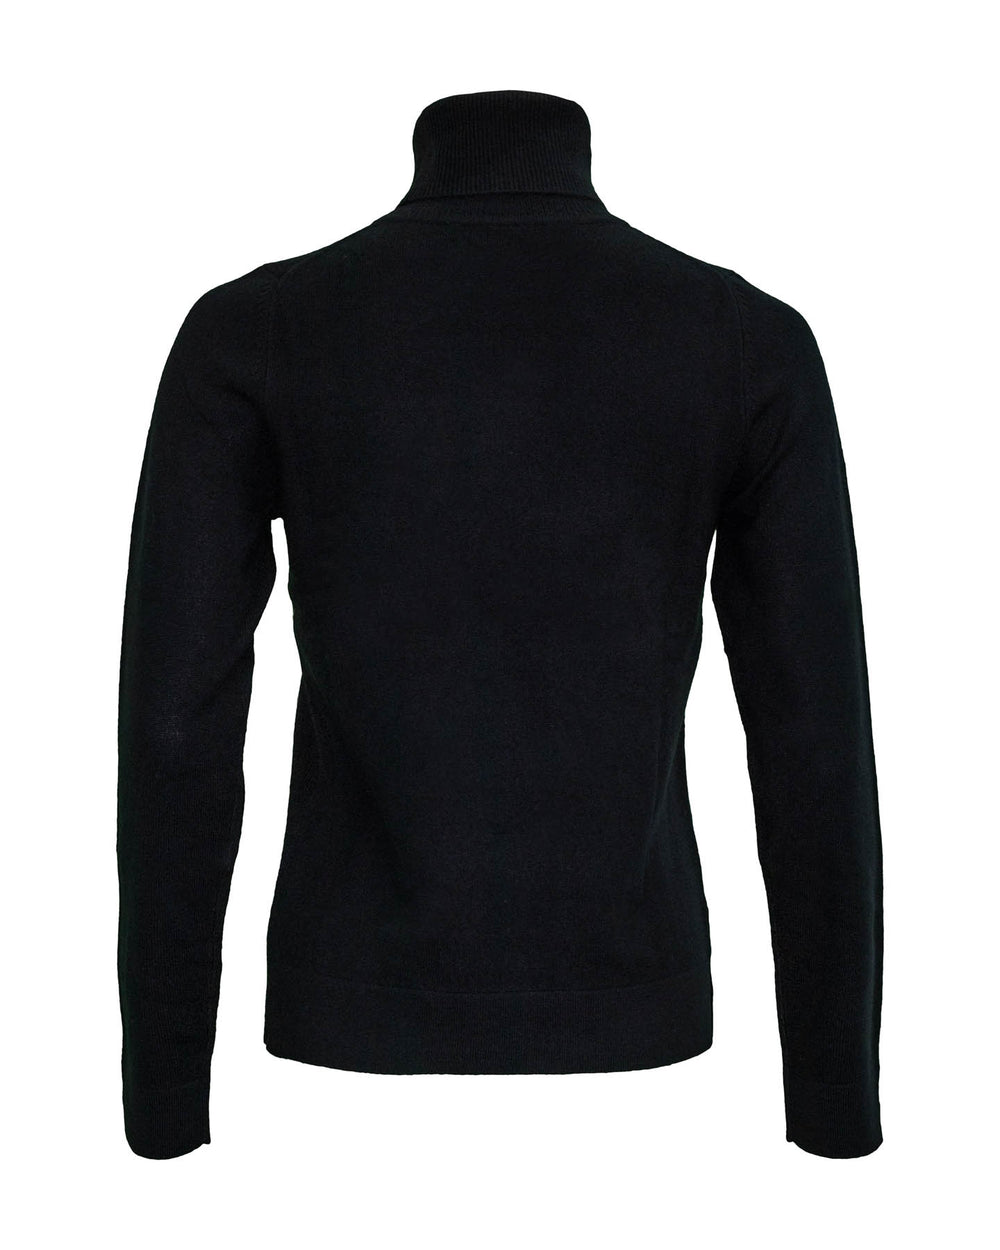 Turtleneck Organic Cashmere Sweater Black